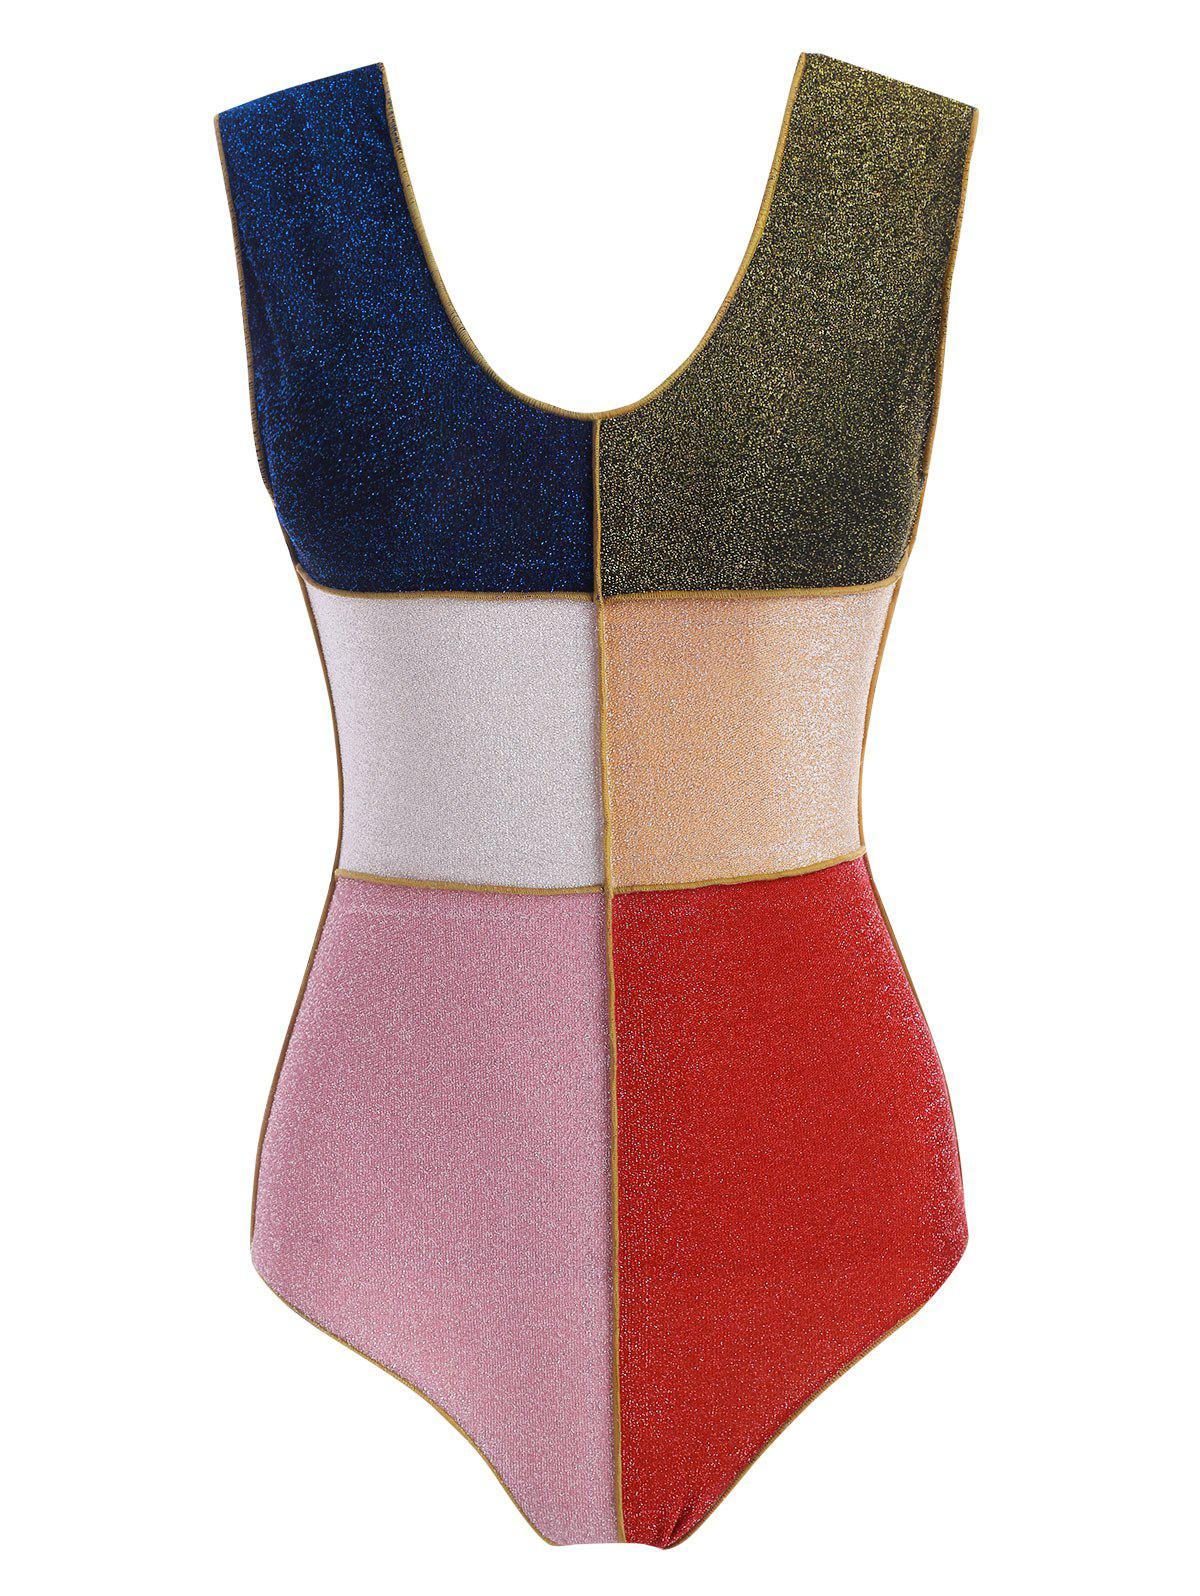 New Colorblock Sparkly Metallic Thread One-piece Swimsuit